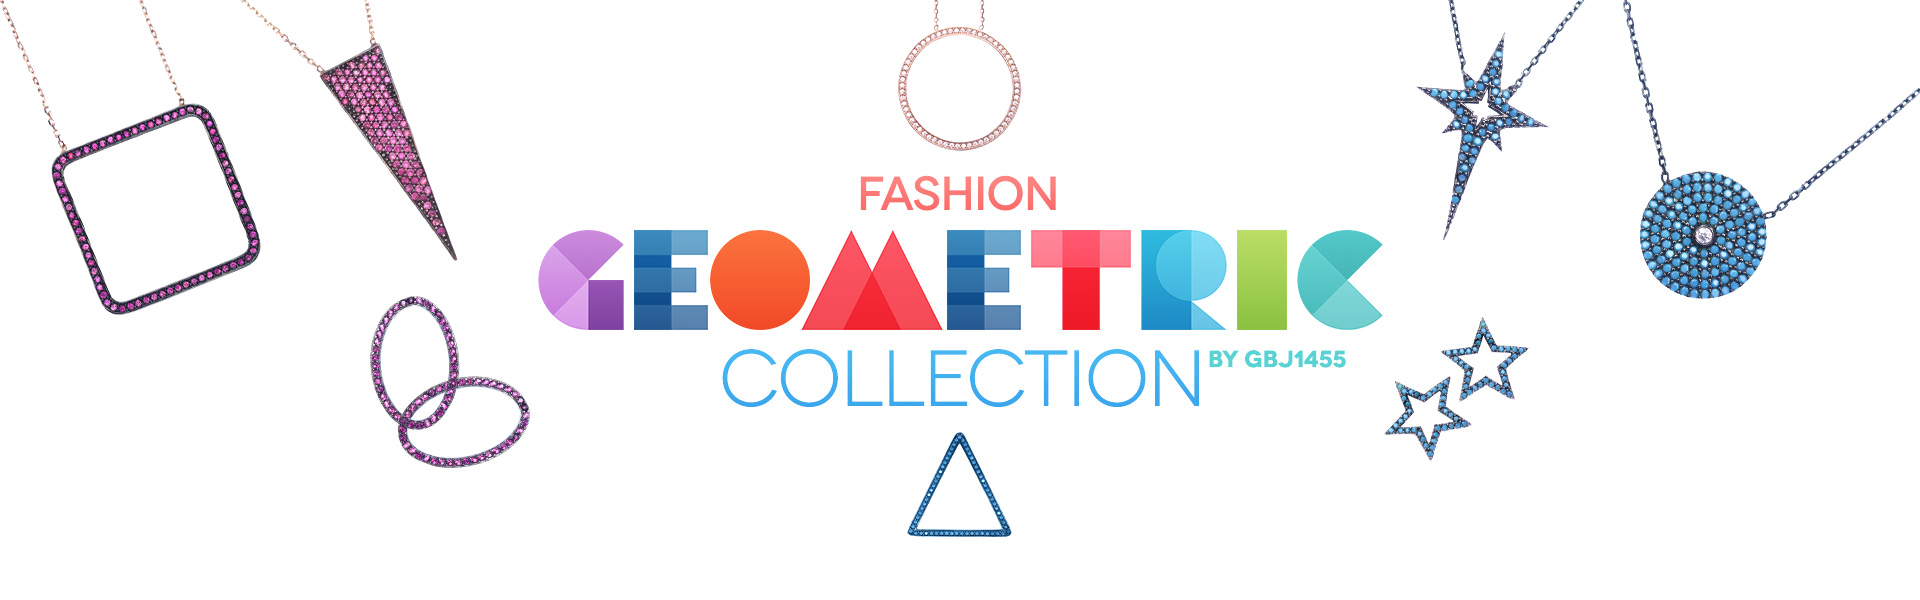 Fashion Geometric Collection